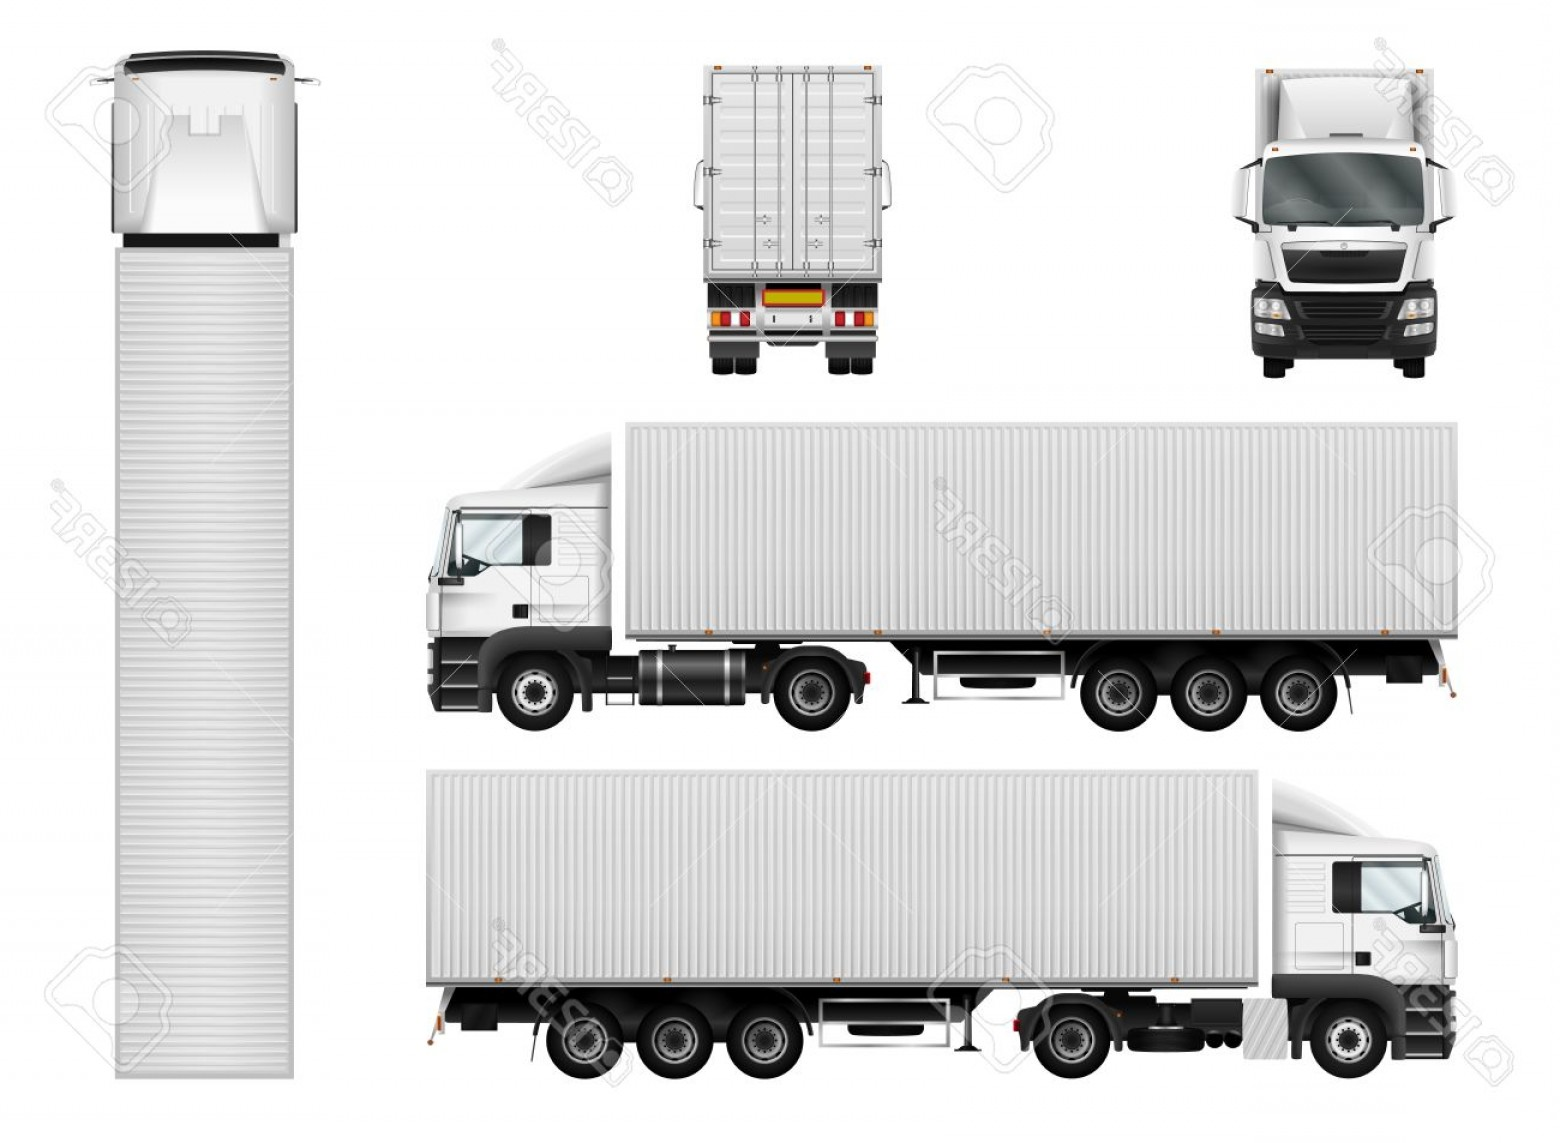 Vector Semi Tanker: Photostock Vector Truck Trailer With Container Vector Semi Truck Template On White Cargo Delivery Vehicle Separate Gro